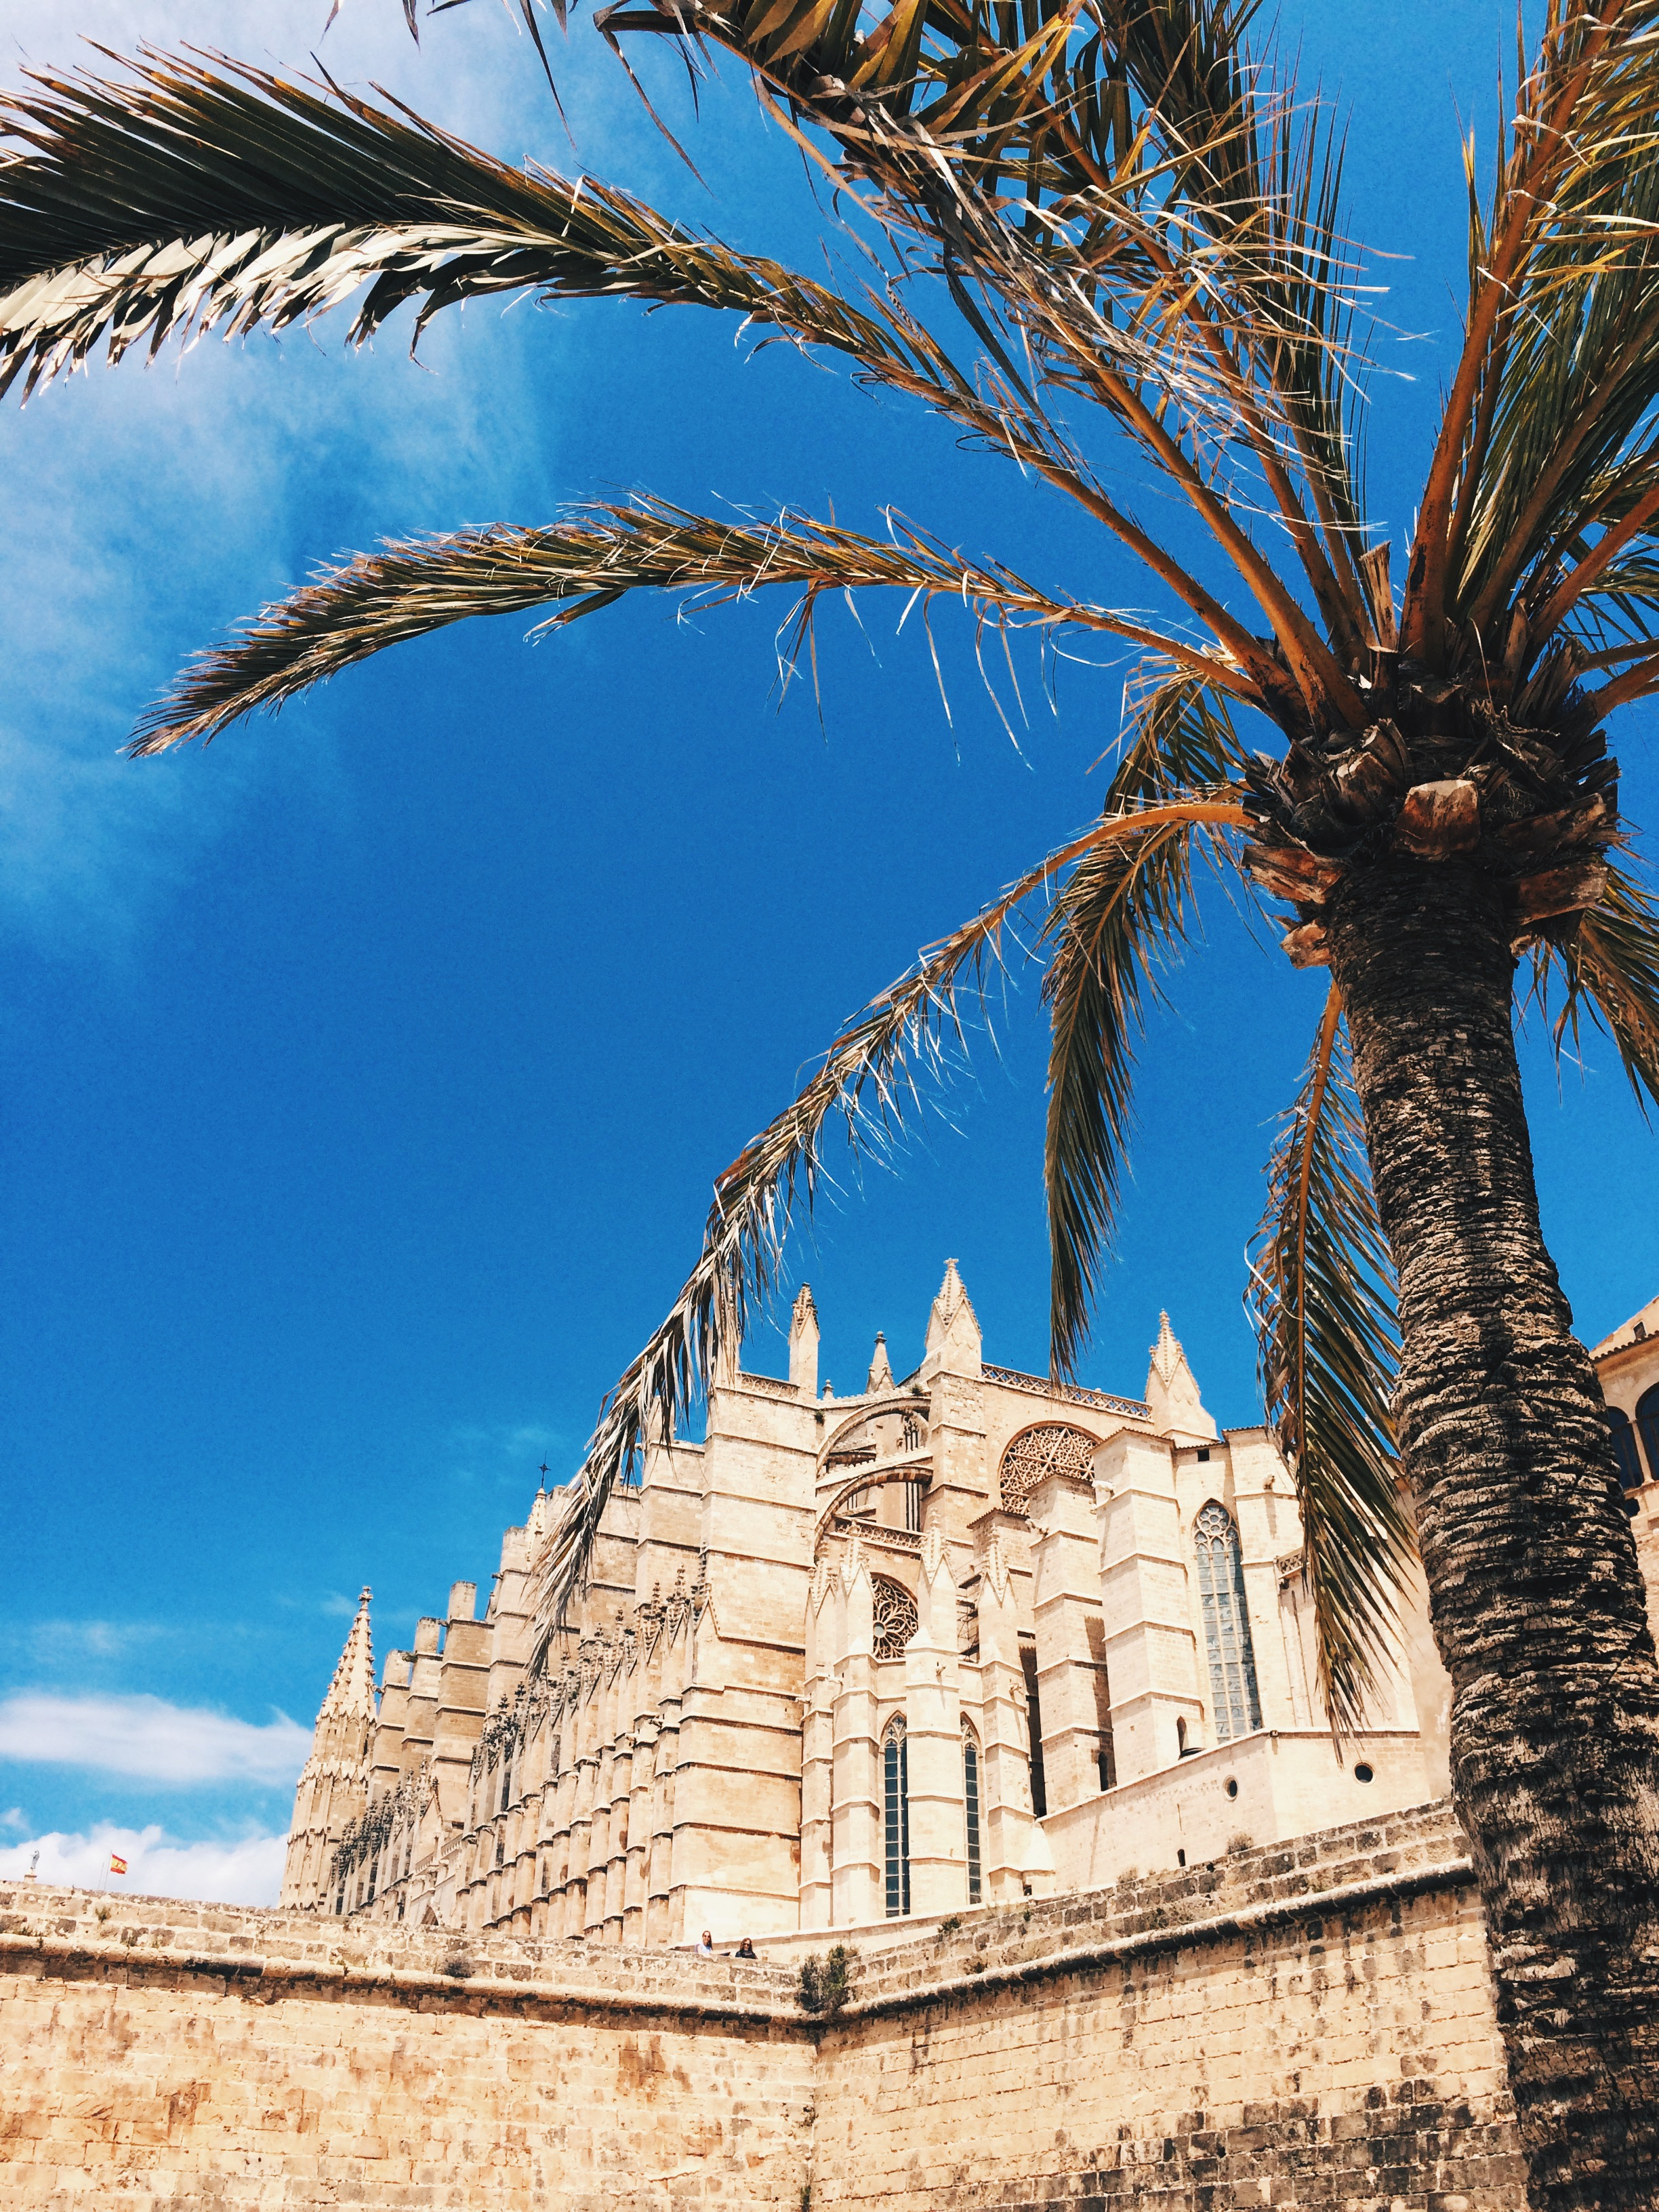 The cathedral in Palma de Mallorca